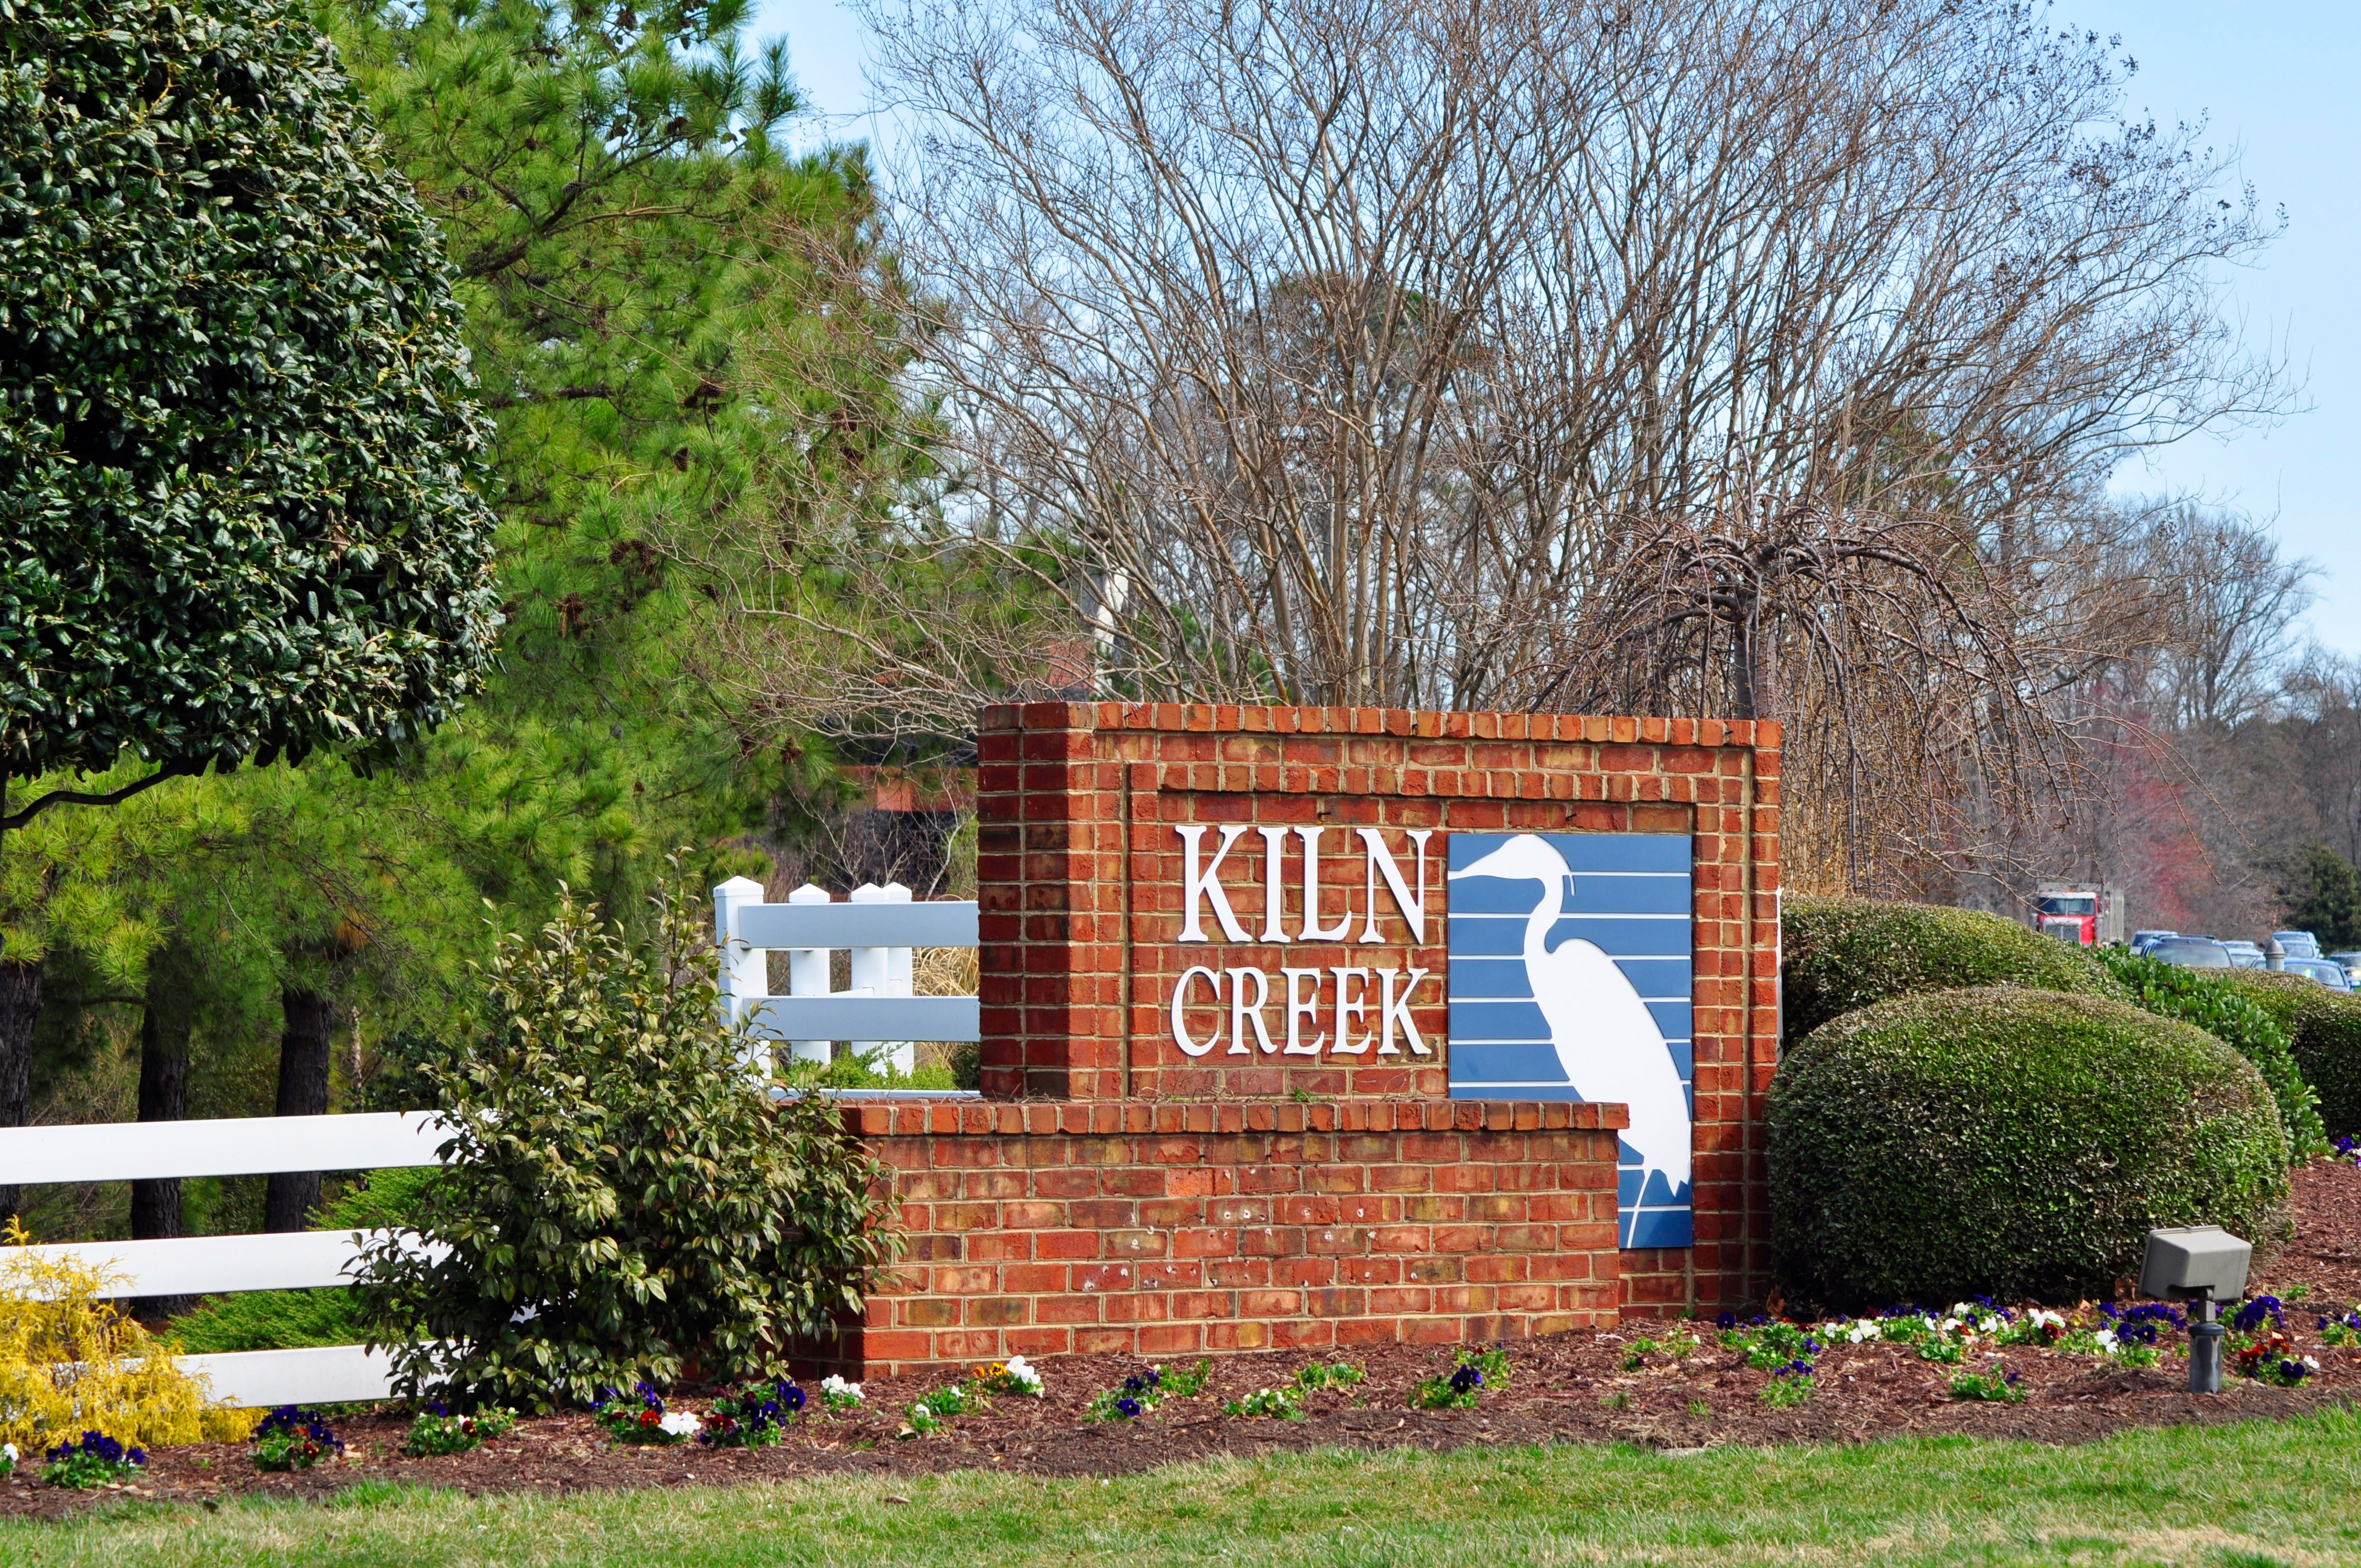 kiln creek sign-1.jpg